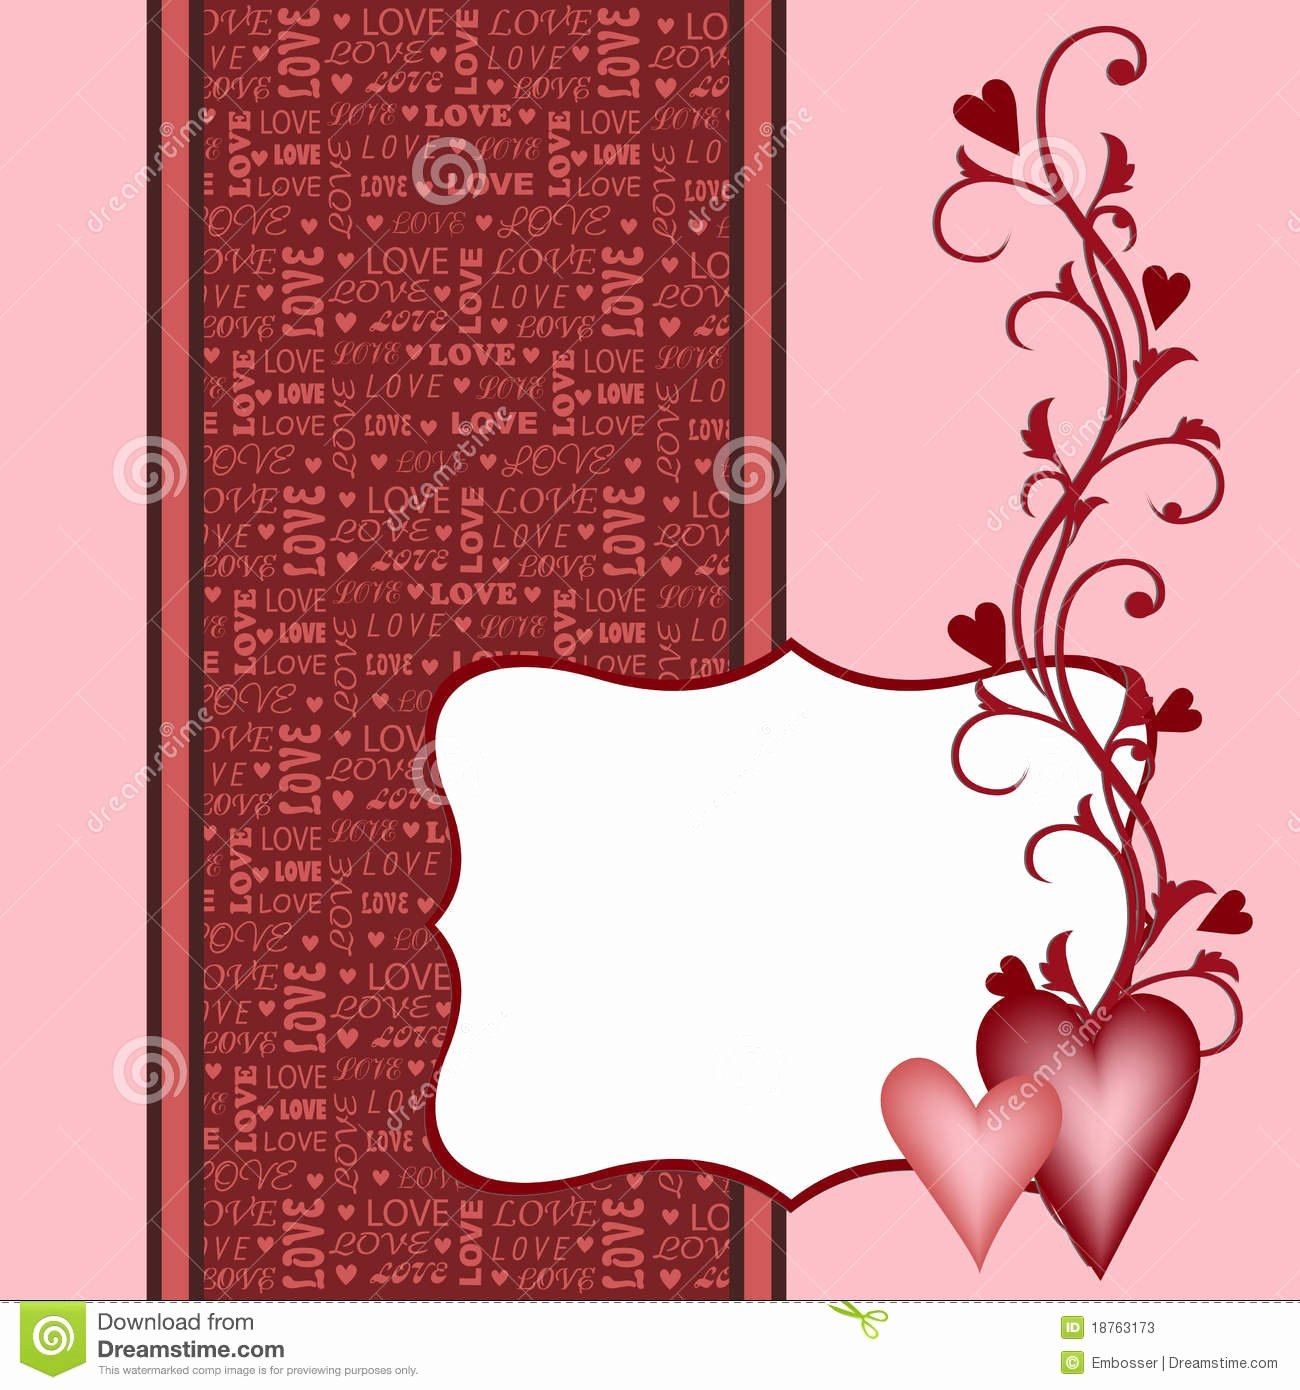 Bridesmaid Card Template New Template for Valentine Wedding Greetings Card Stock